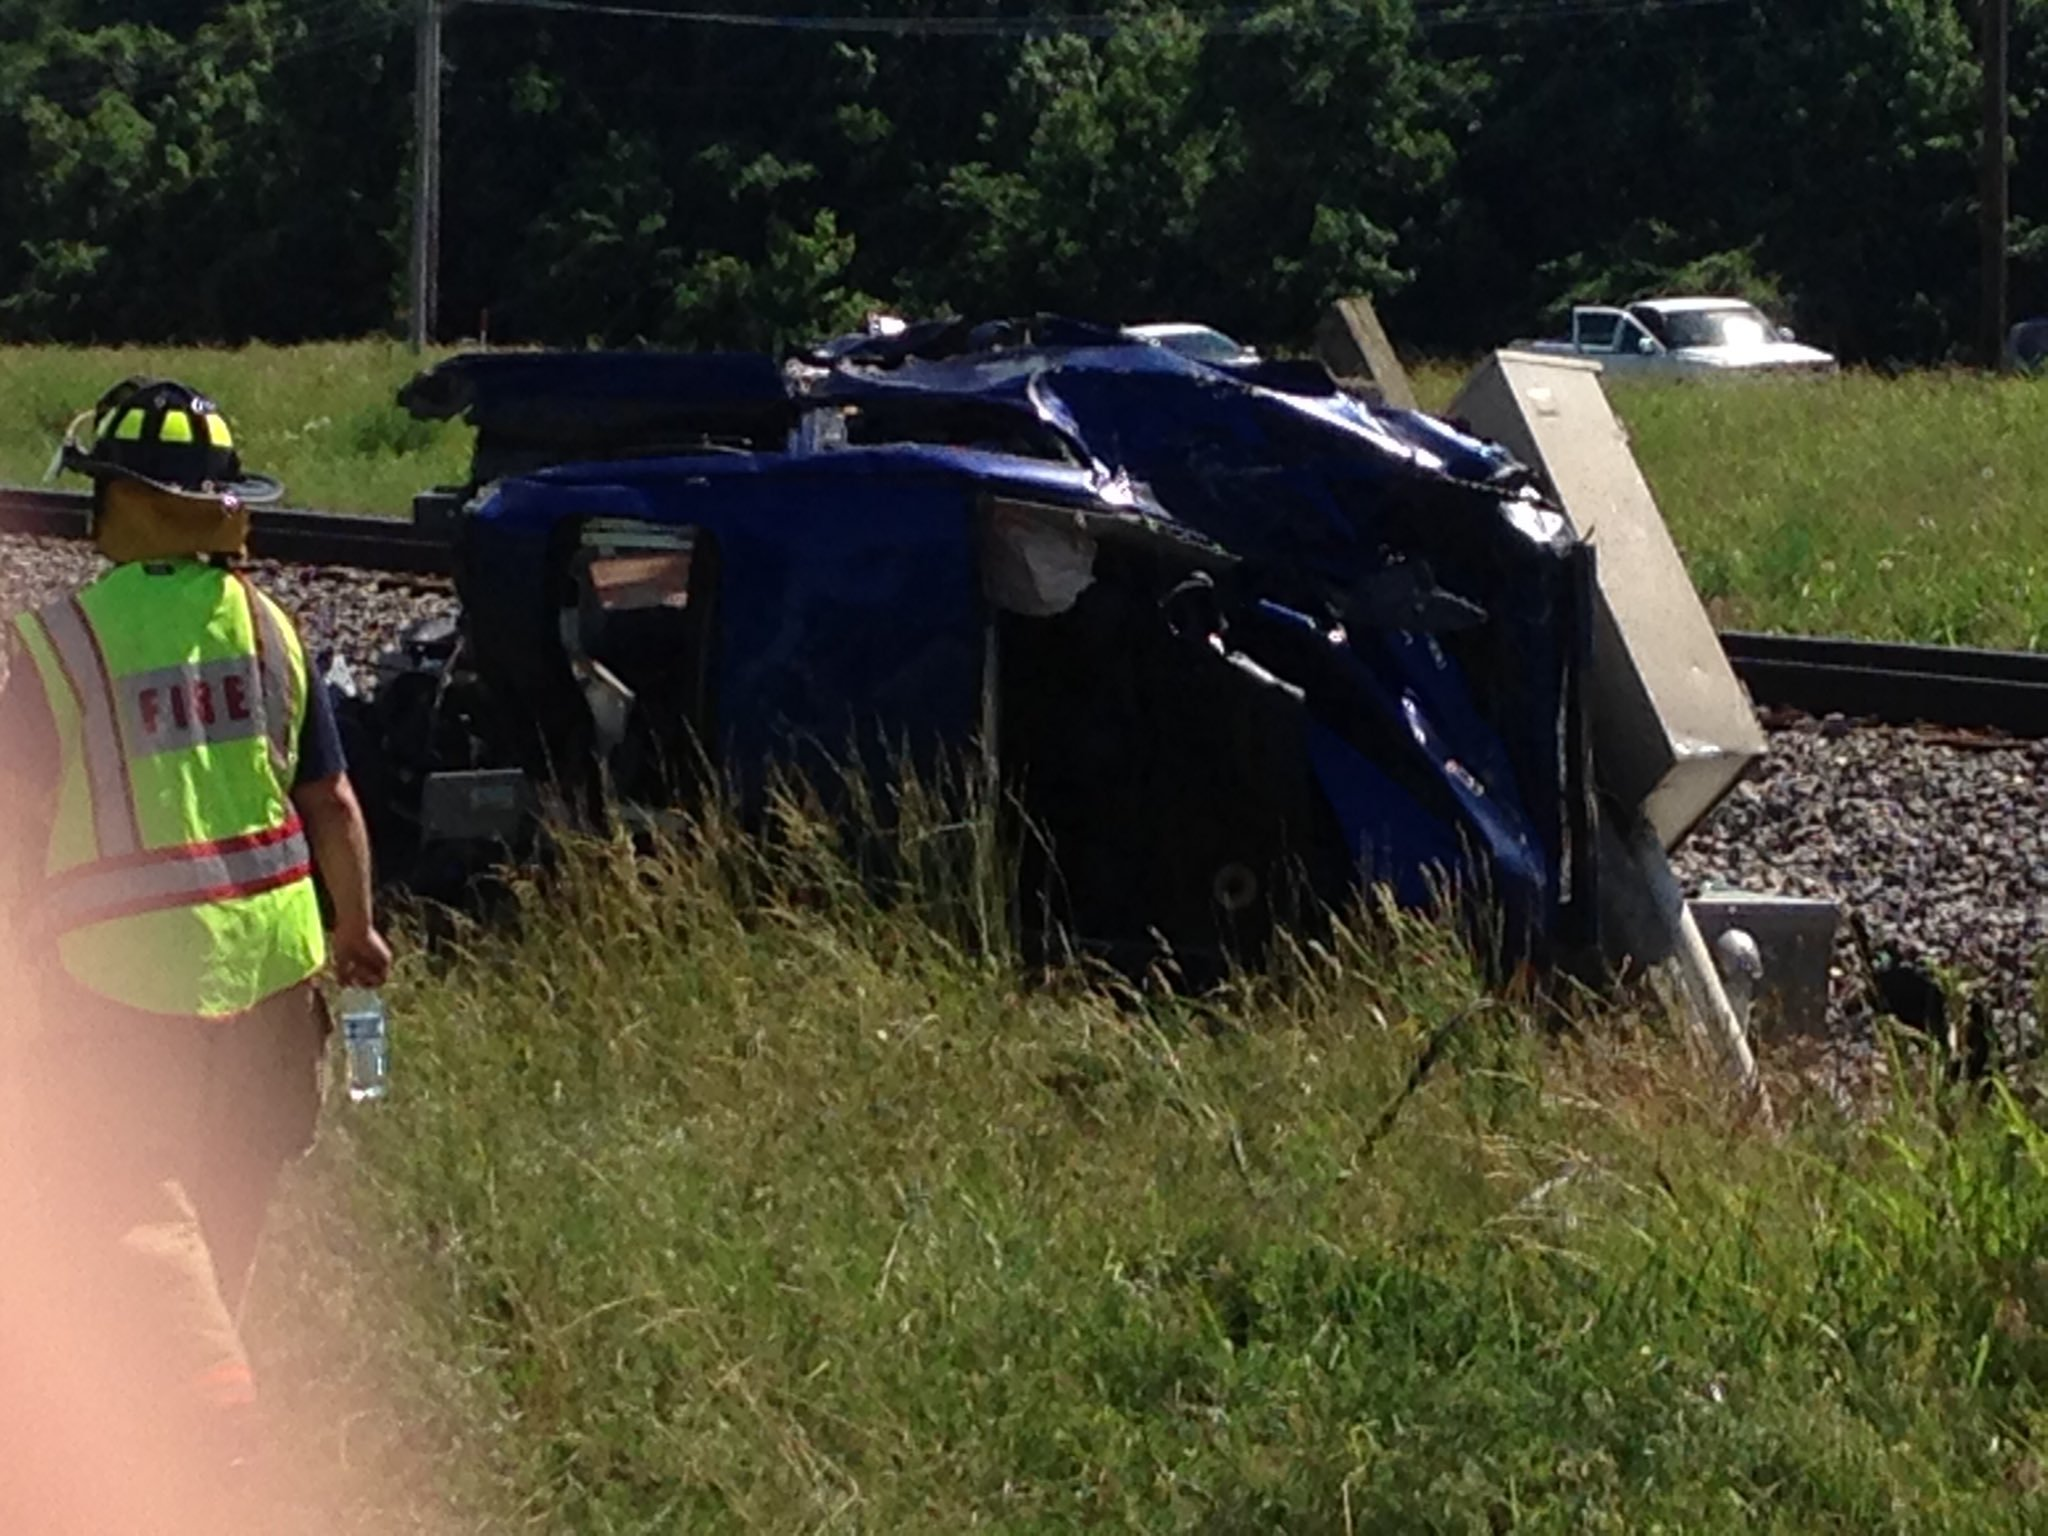 Driver killed after Amtrak train hits vehicle in Hubbard